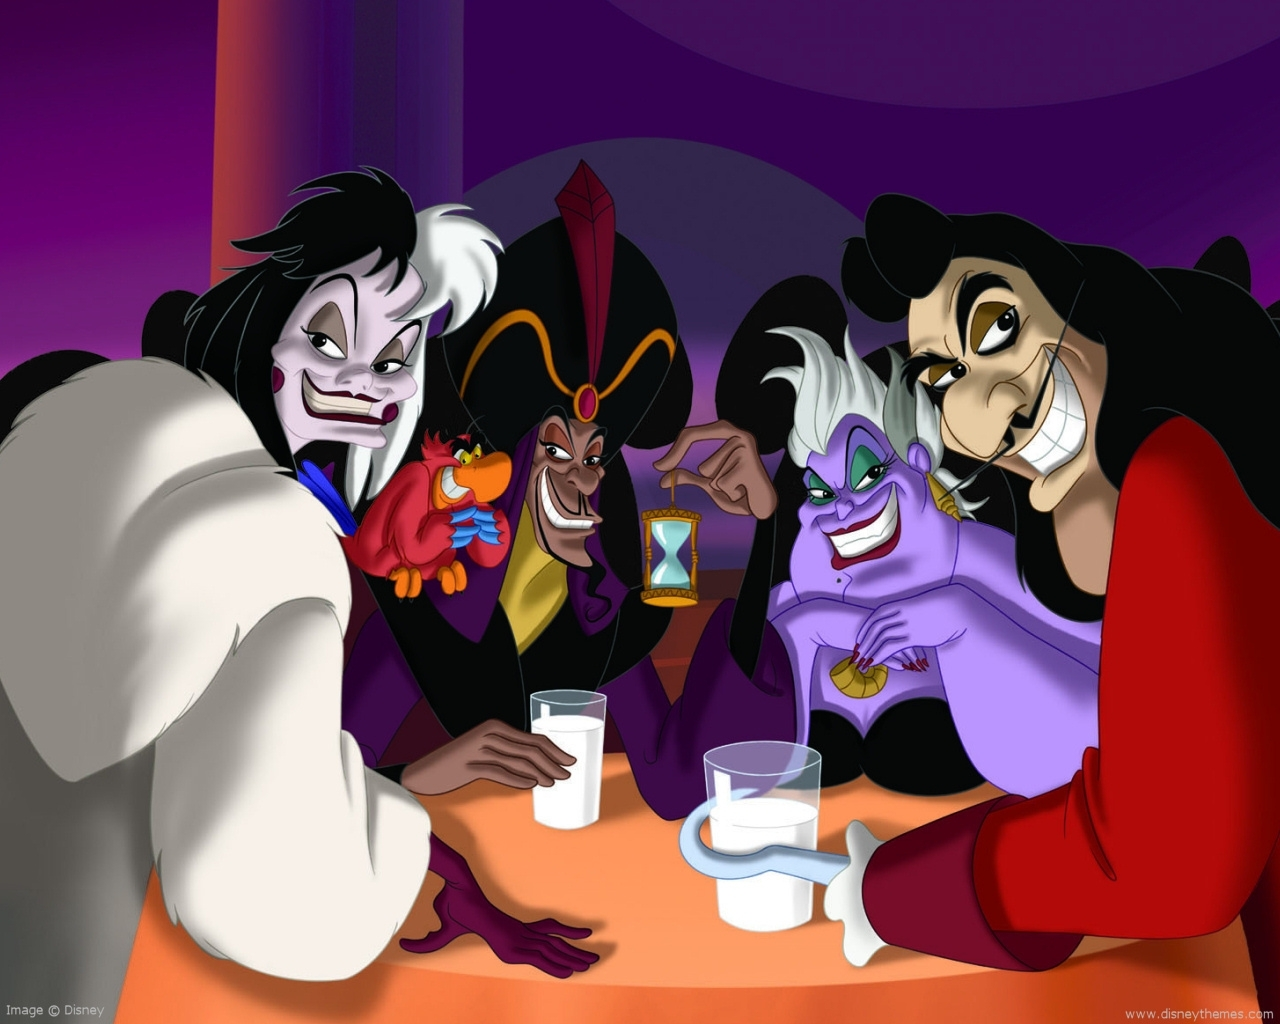 Disney-villains-disney-villains-9311723-1280-1024